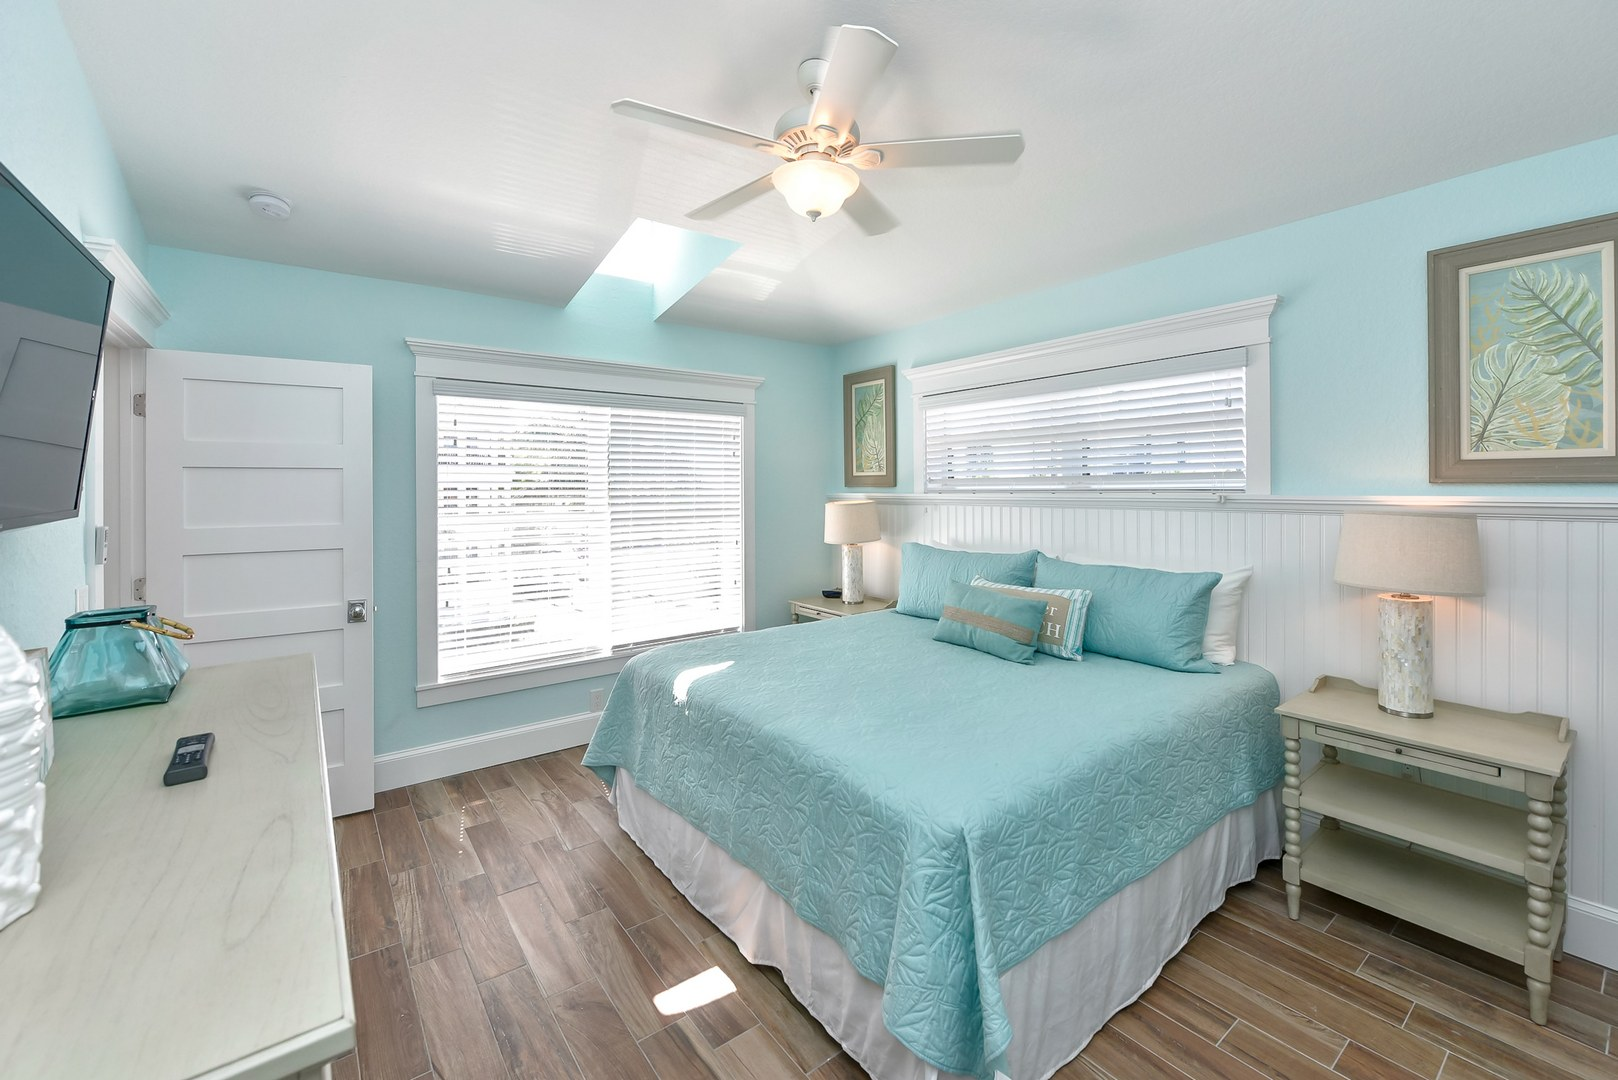 Example - Bedroom 4 - King bed